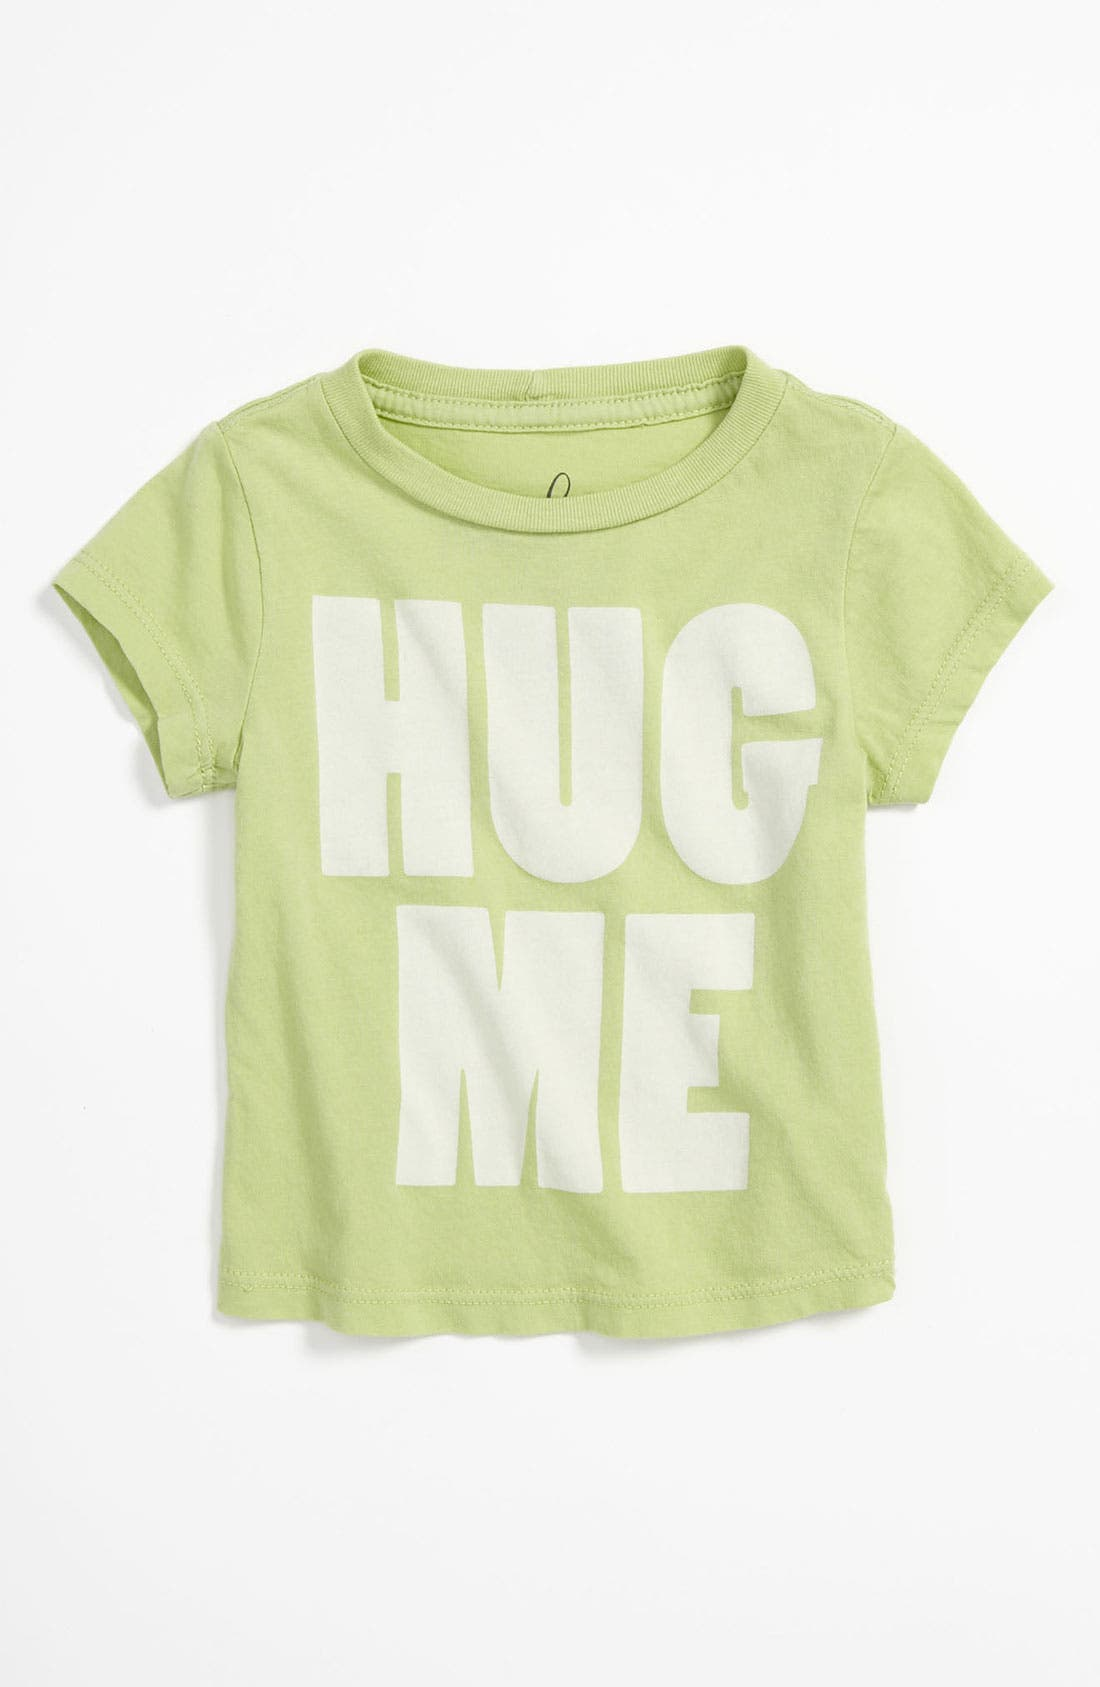 Main Image - Peek 'Little Peanut - Hug Me' T-Shirt (Baby)